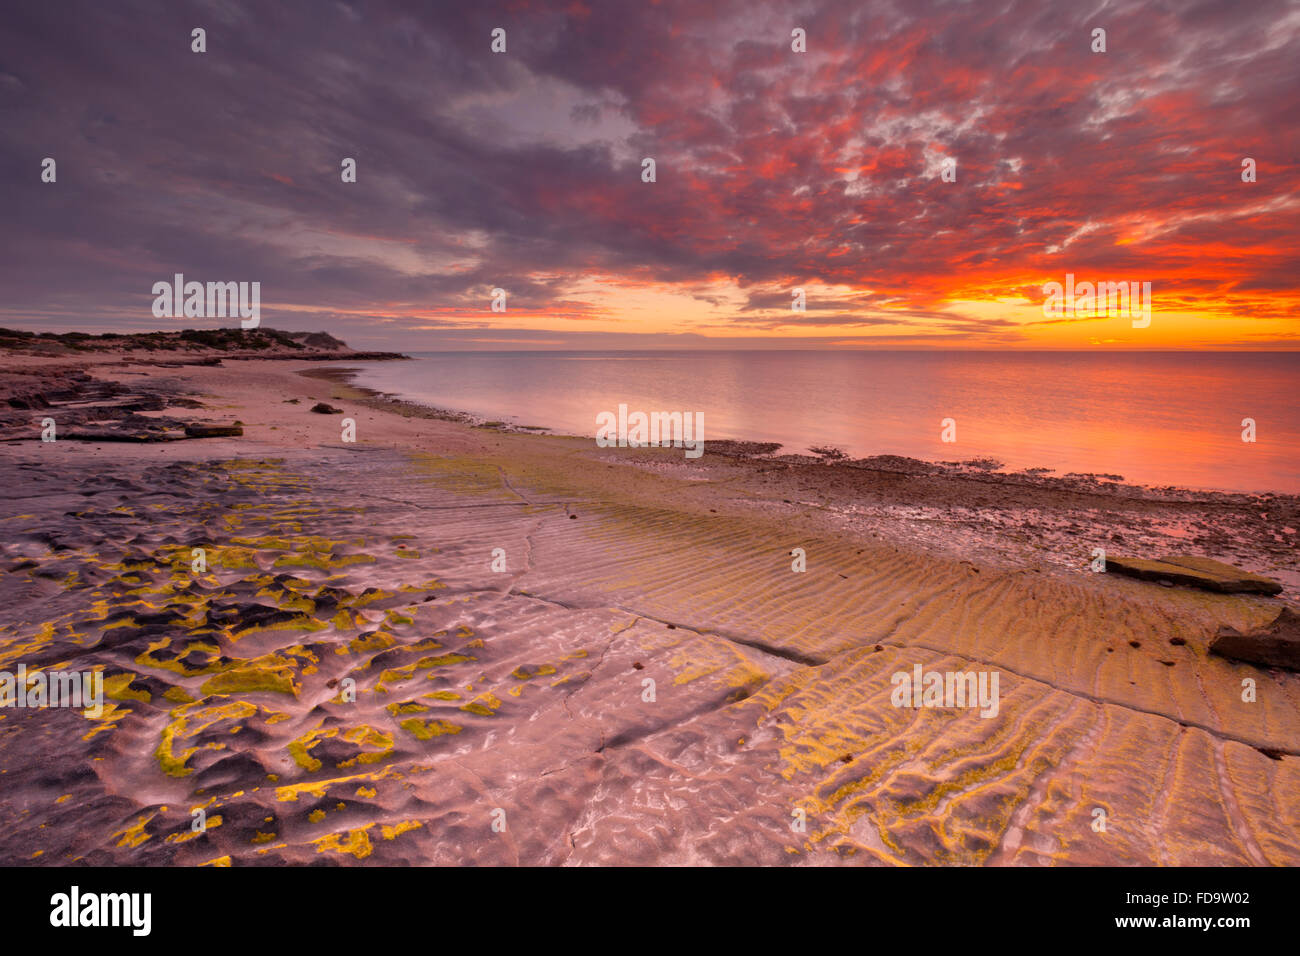 Sunset on the coast of Cape Range National Park in Western Australia. Stock Photo